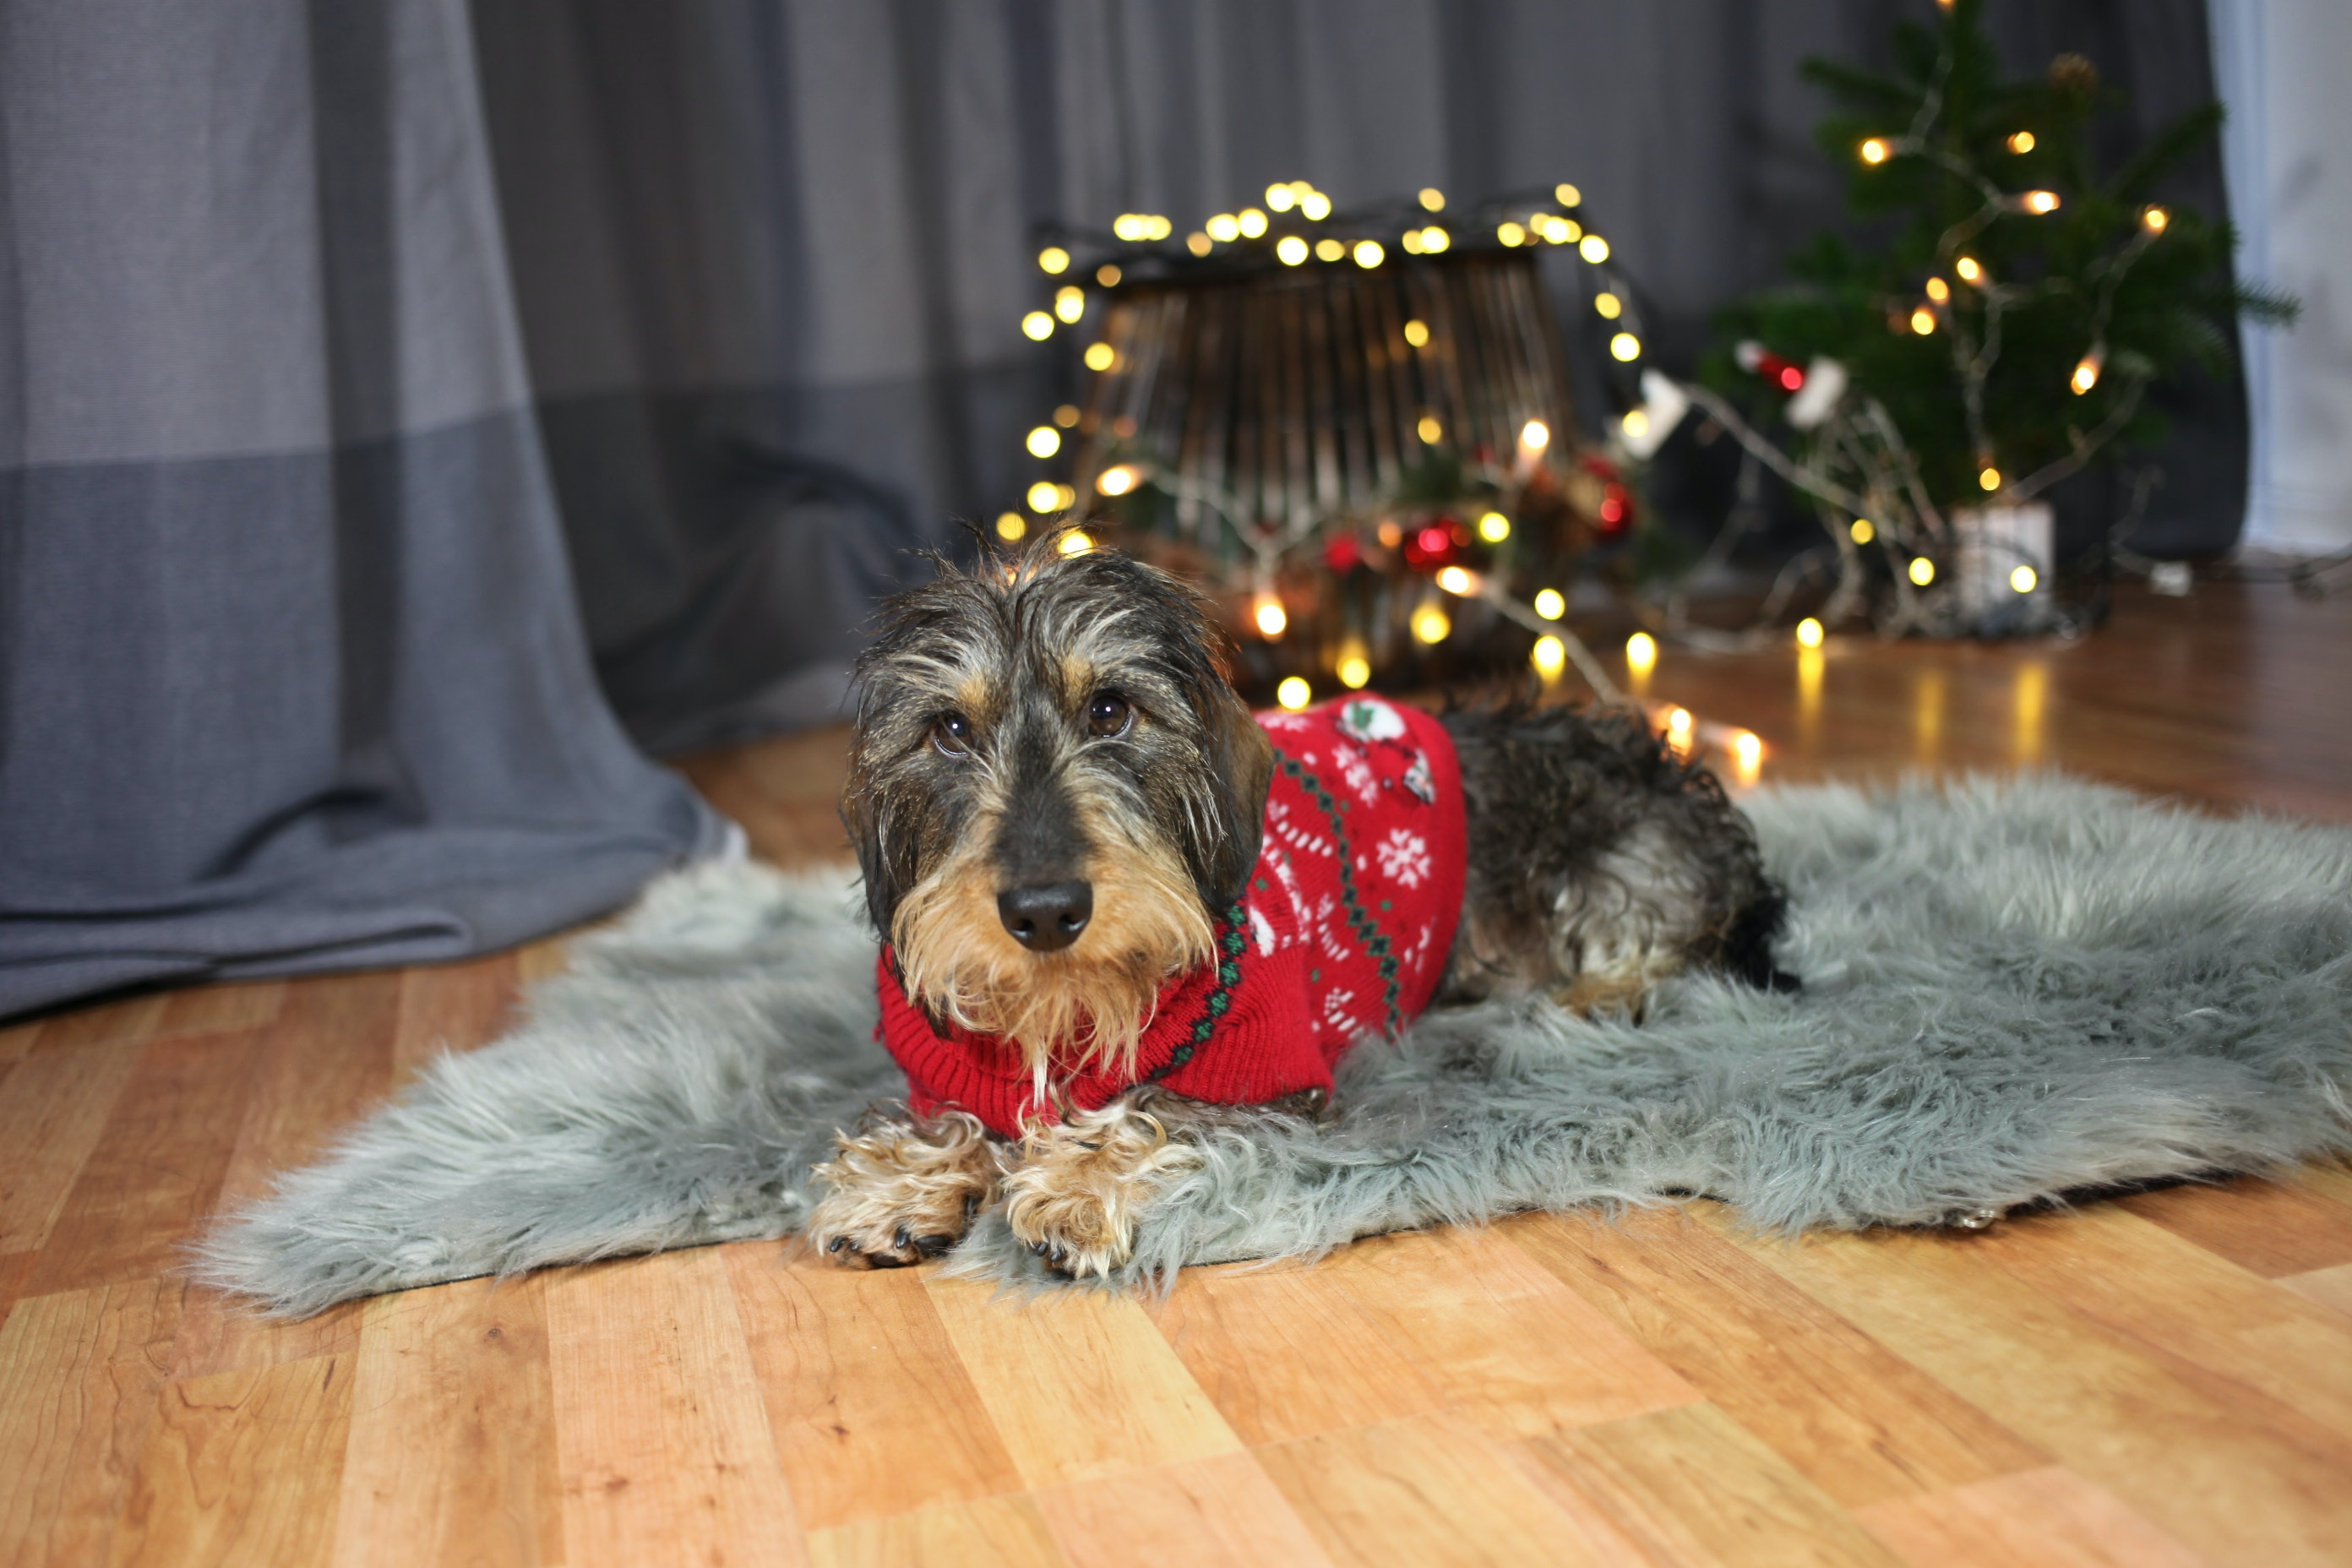 33 Captions For Your Dog S Holiday Sweaters That Are Too Darn Cute